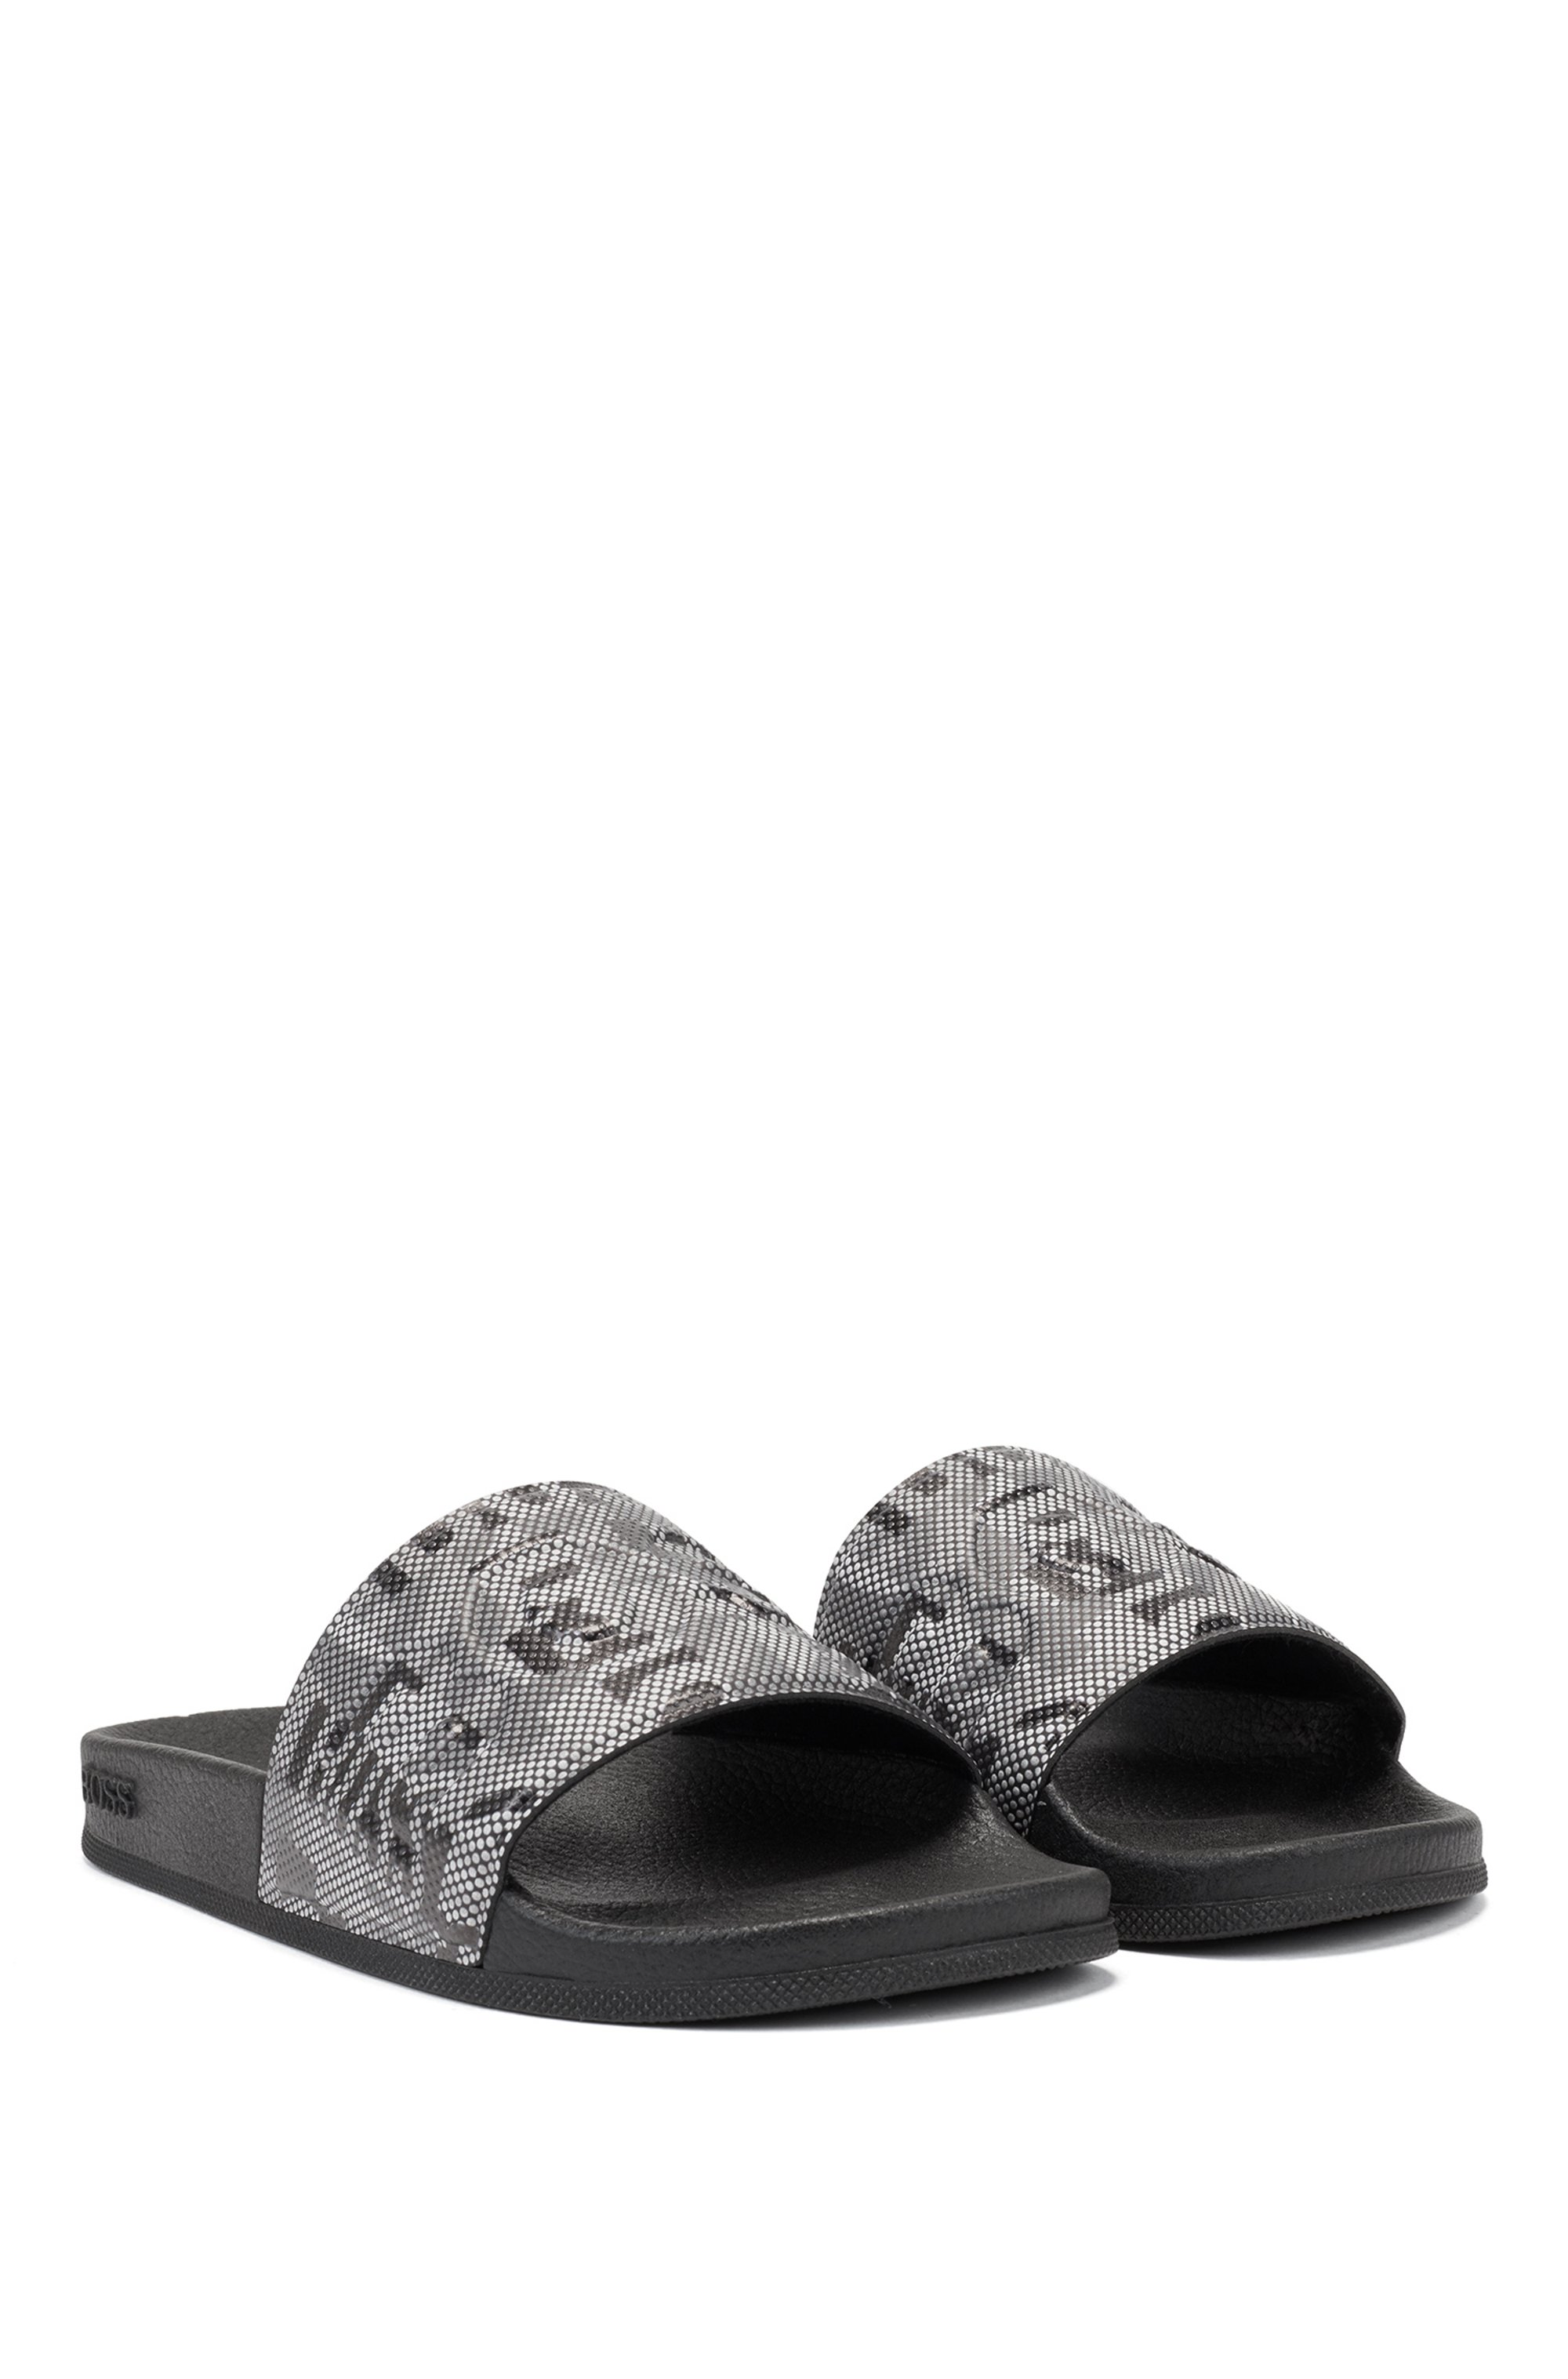 Italian-made slides with branded camouflage strap